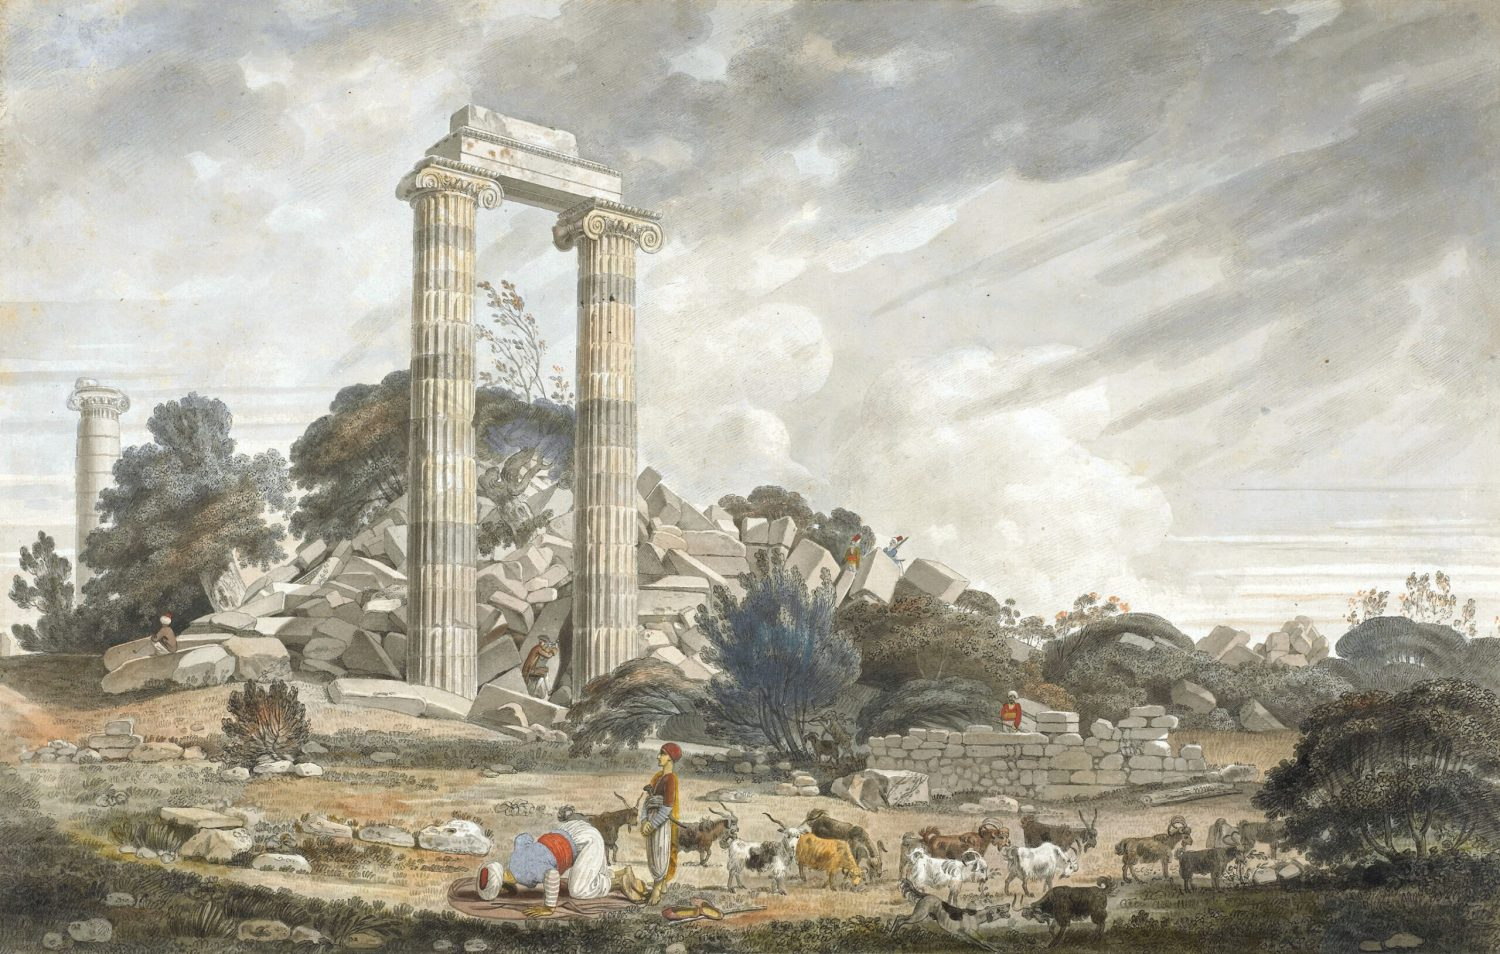 OPPOSITE William Pars, Ruins of the temple of Apollo at Didyma, from the north-east¸ October 1764. Pen and grey and black ink, watercolour, with gum arabic and some body colour. Size: 299 x